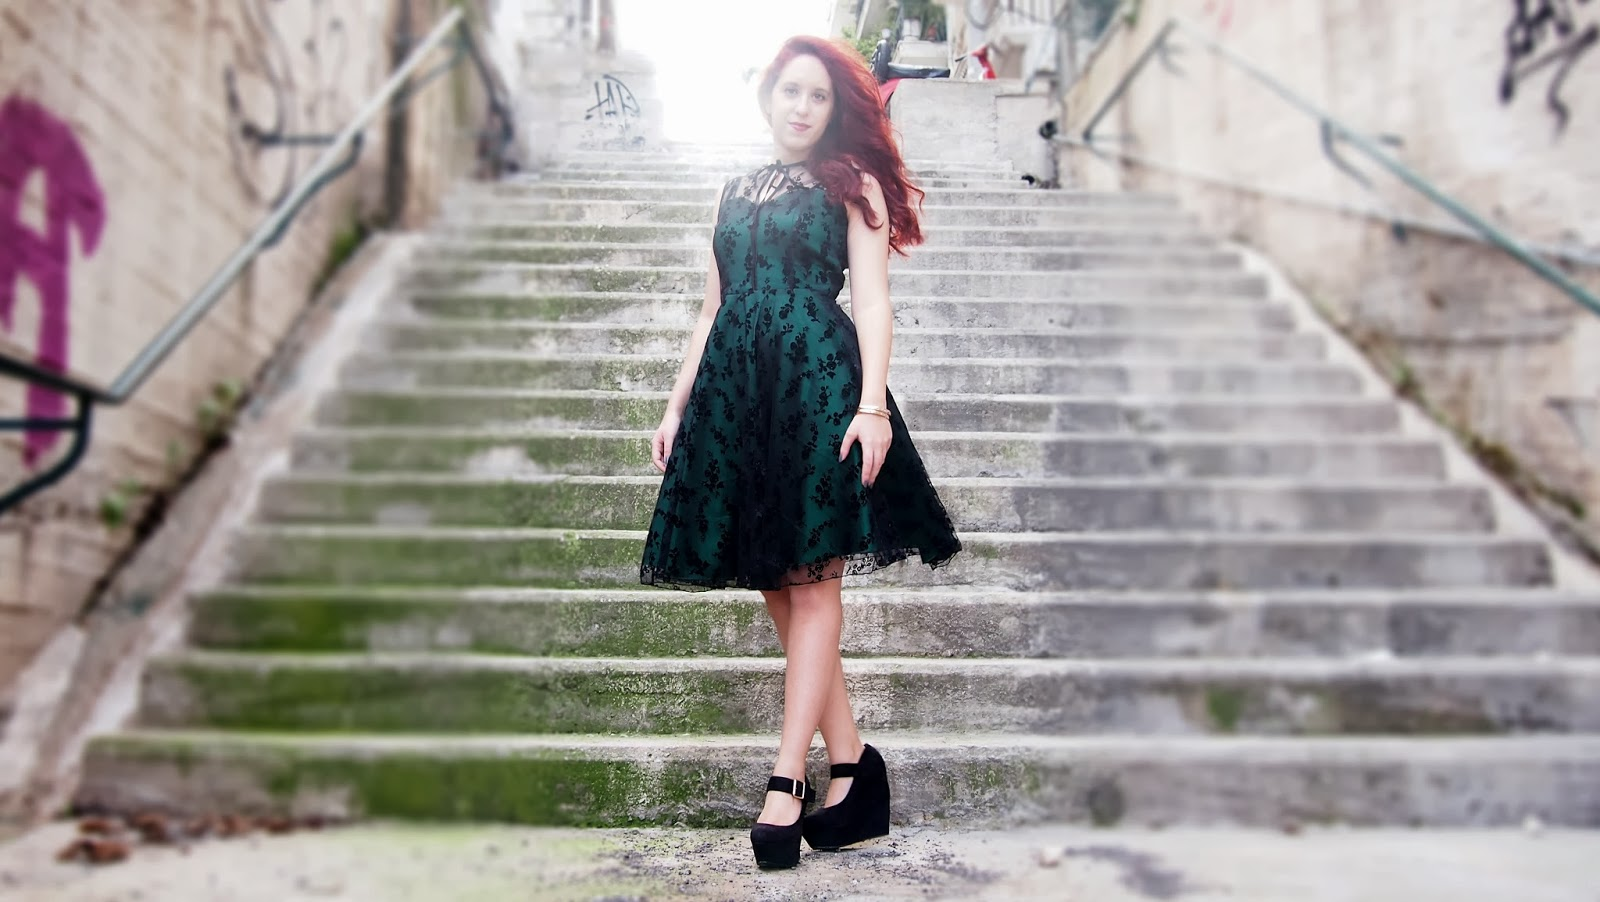 redhead, spotlights on the redhead, voodoo vixen, voodoo, vixen, lace, green dress, lace dress, migato, dyrberg/kern, dyrberg kern, fashion, model,